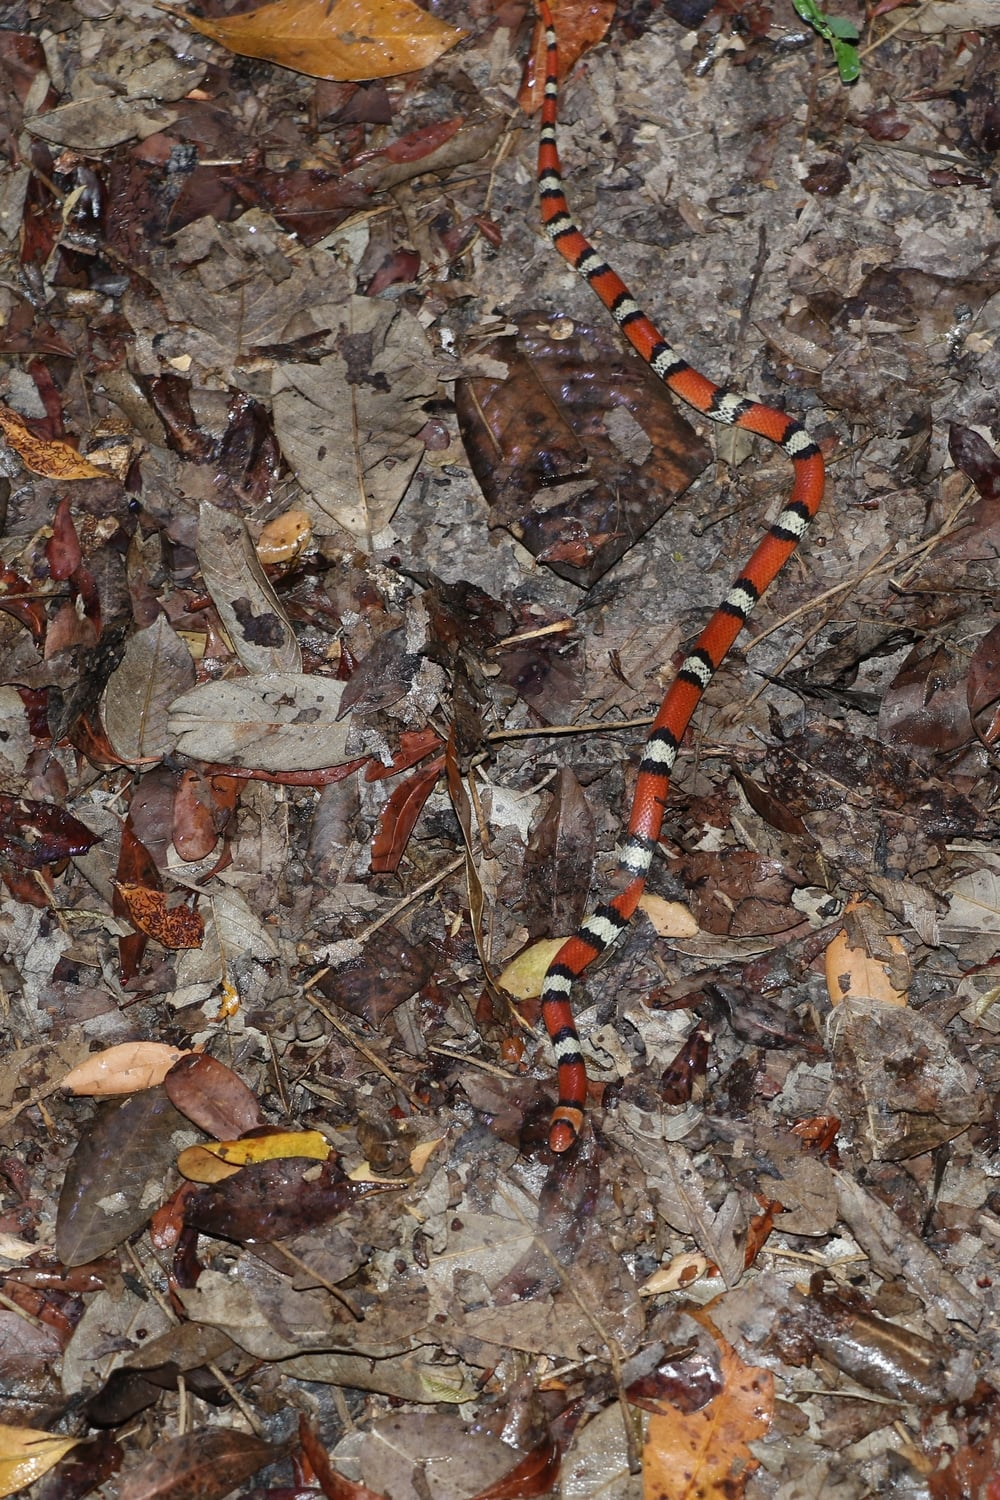 Florida Scarletsnake - One of the coolest experiences of the trip was night-hiking these in a mosquito-infested trail with a good friend.  Shining and seeing a flash of color among the vegetation is an adrenaline rush like no other.